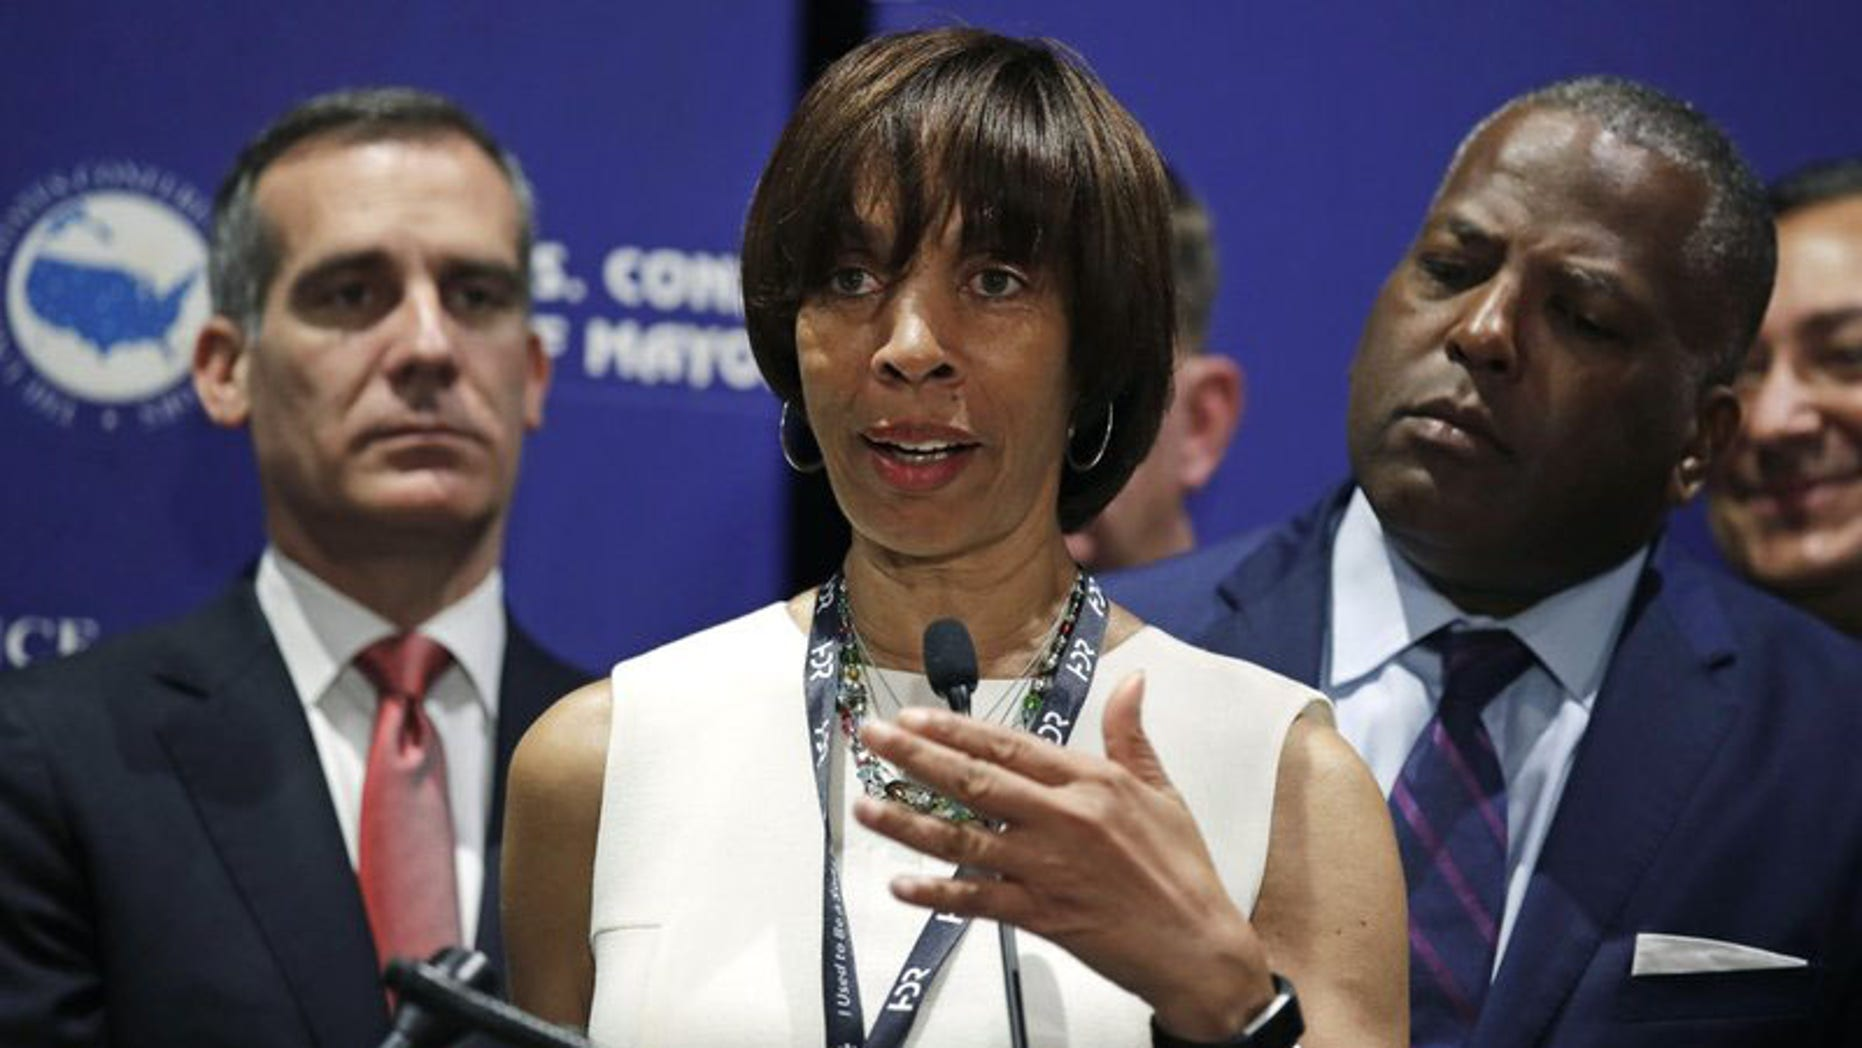 Democratic Mayor Catherine Pugh was elected in 2016. Prior to that, she served as a state senator.